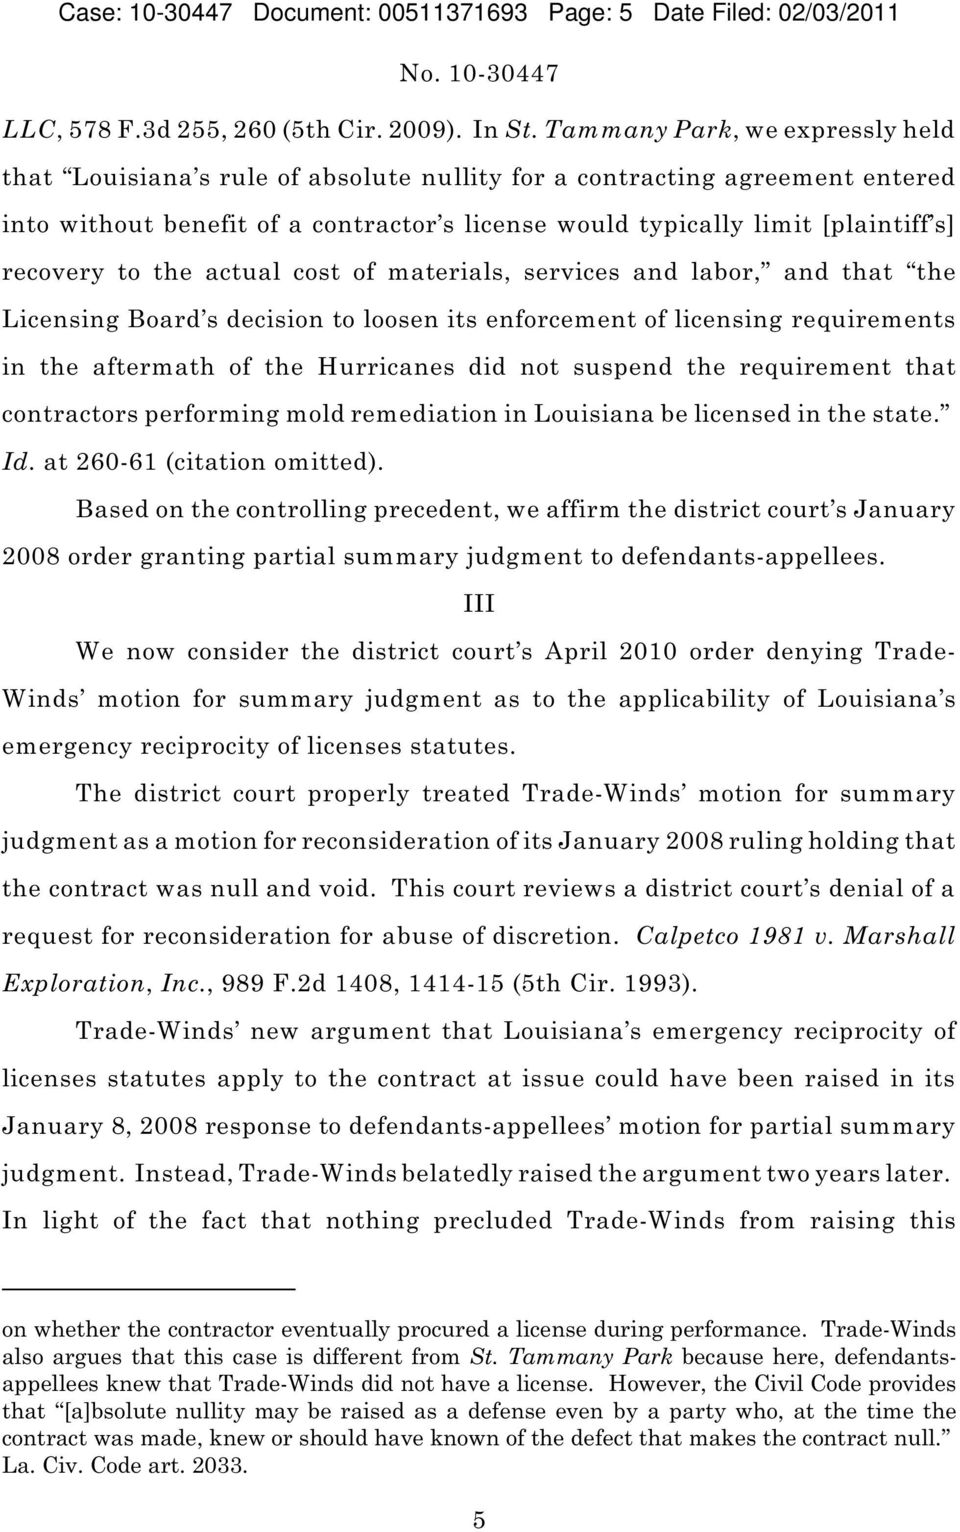 recovery to the actual cost of materials, services and labor, and that the Licensing Board s decision to loosen its enforcement of licensing requirements in the aftermath of the Hurricanes did not